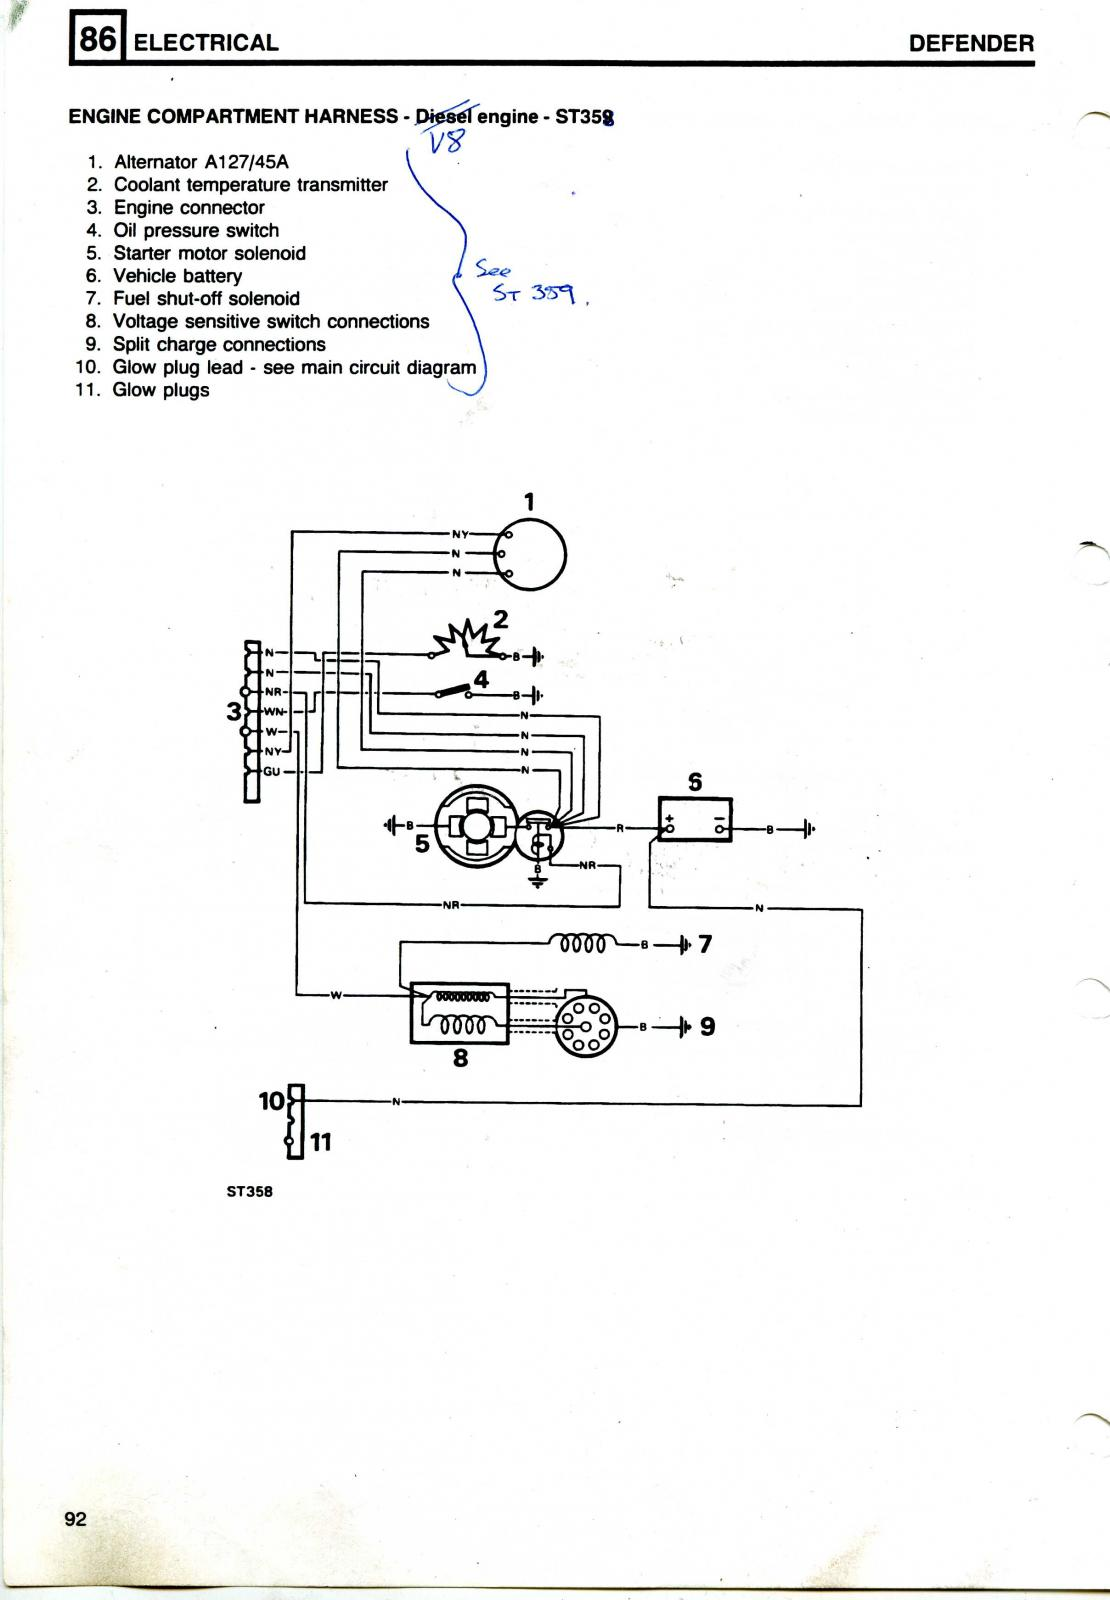 Land Rover 90 V8 3.5 (Carb) Wiring Diagram needed